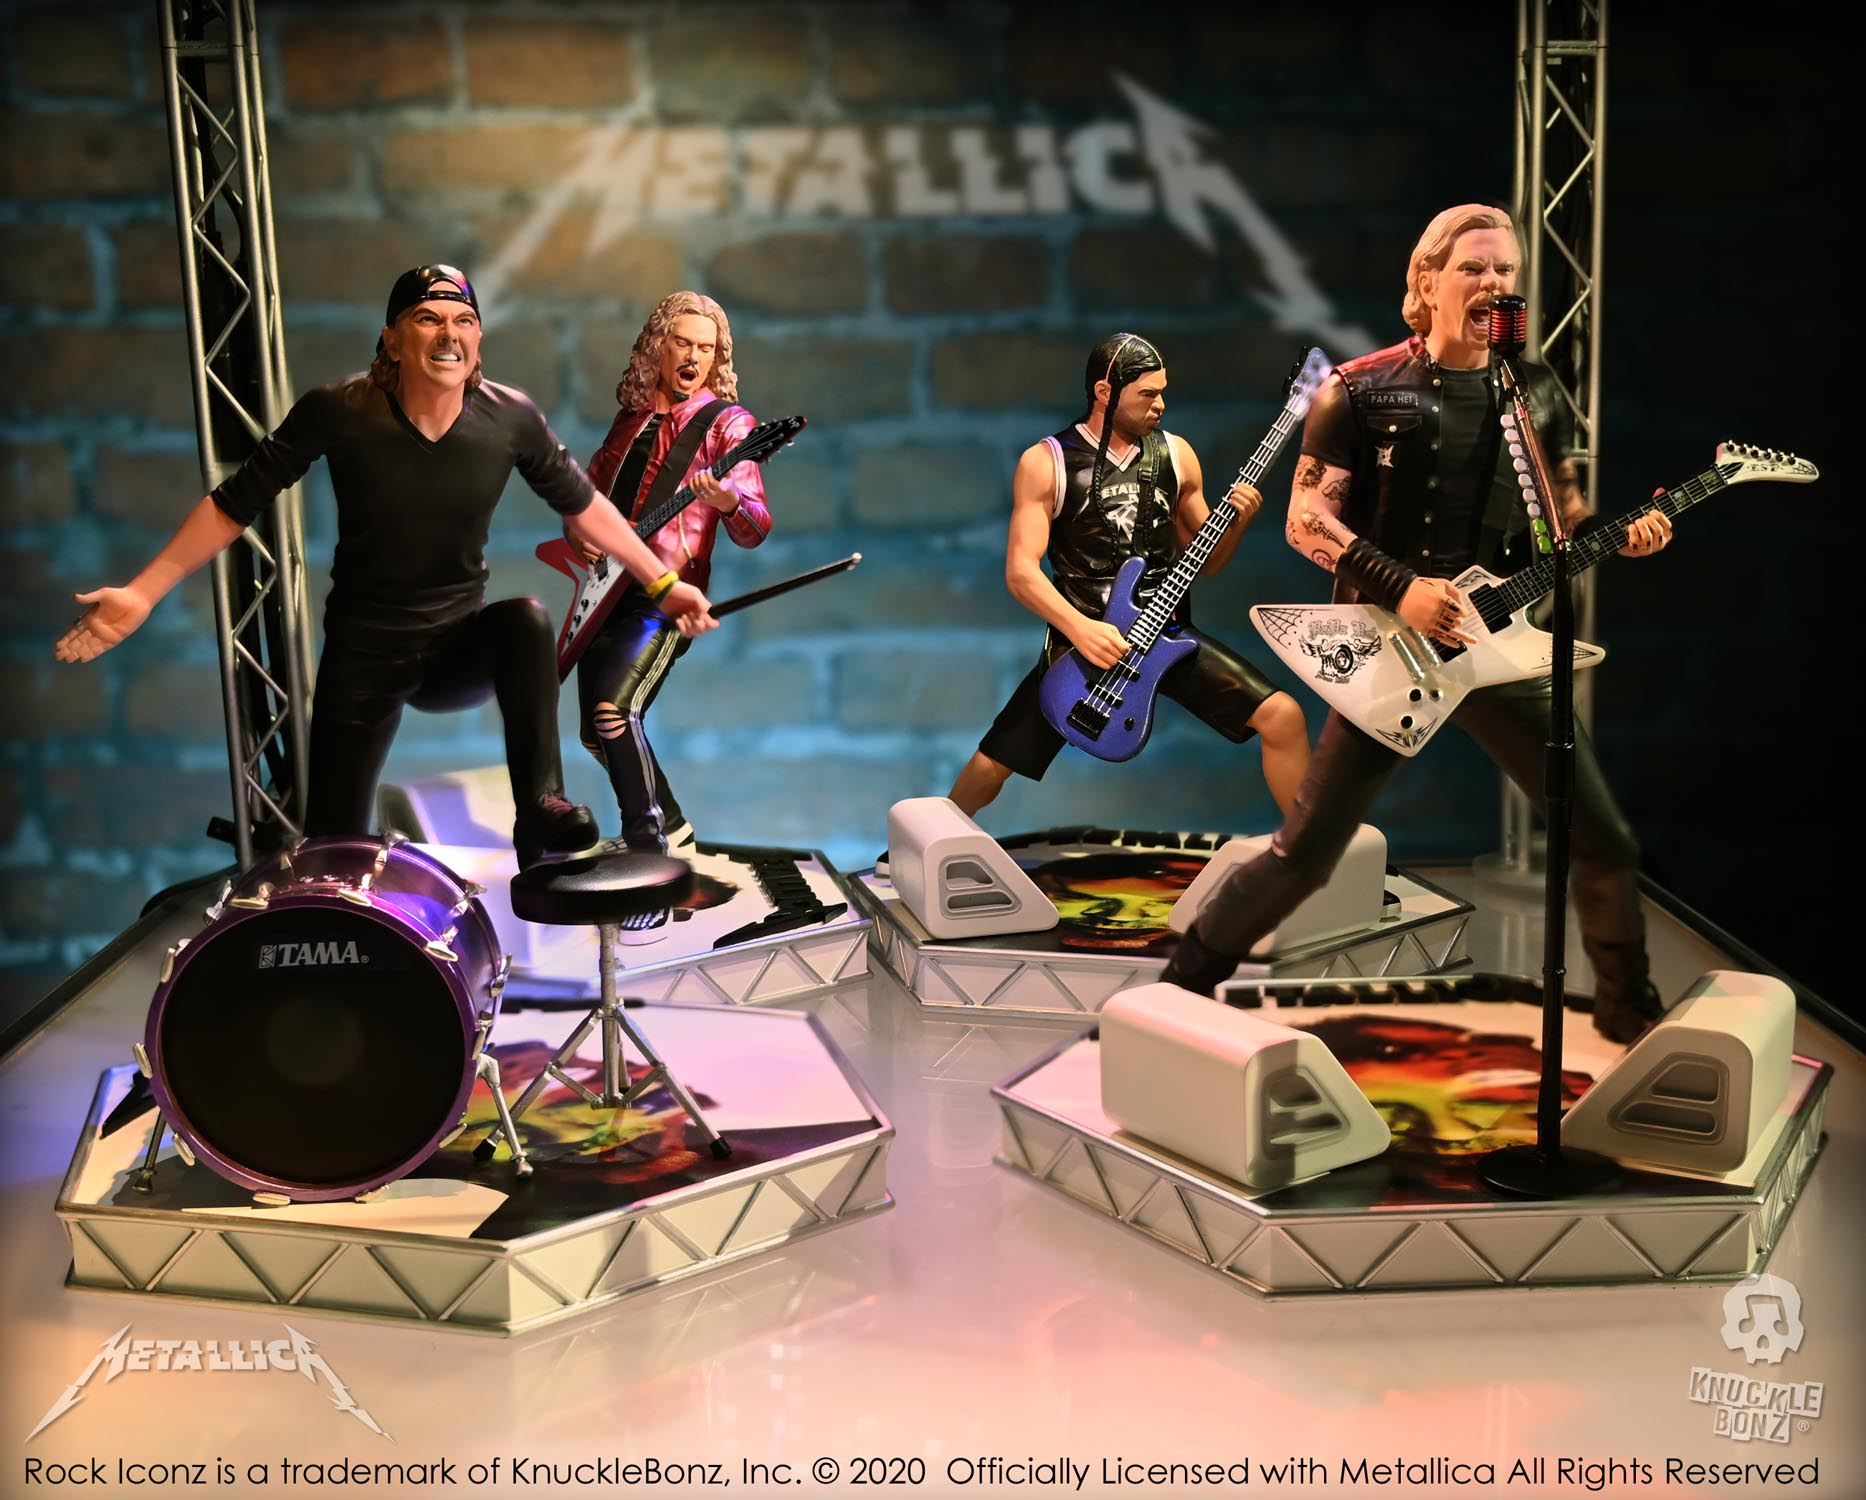 The Metallica Rock Iconz Collectible Statues